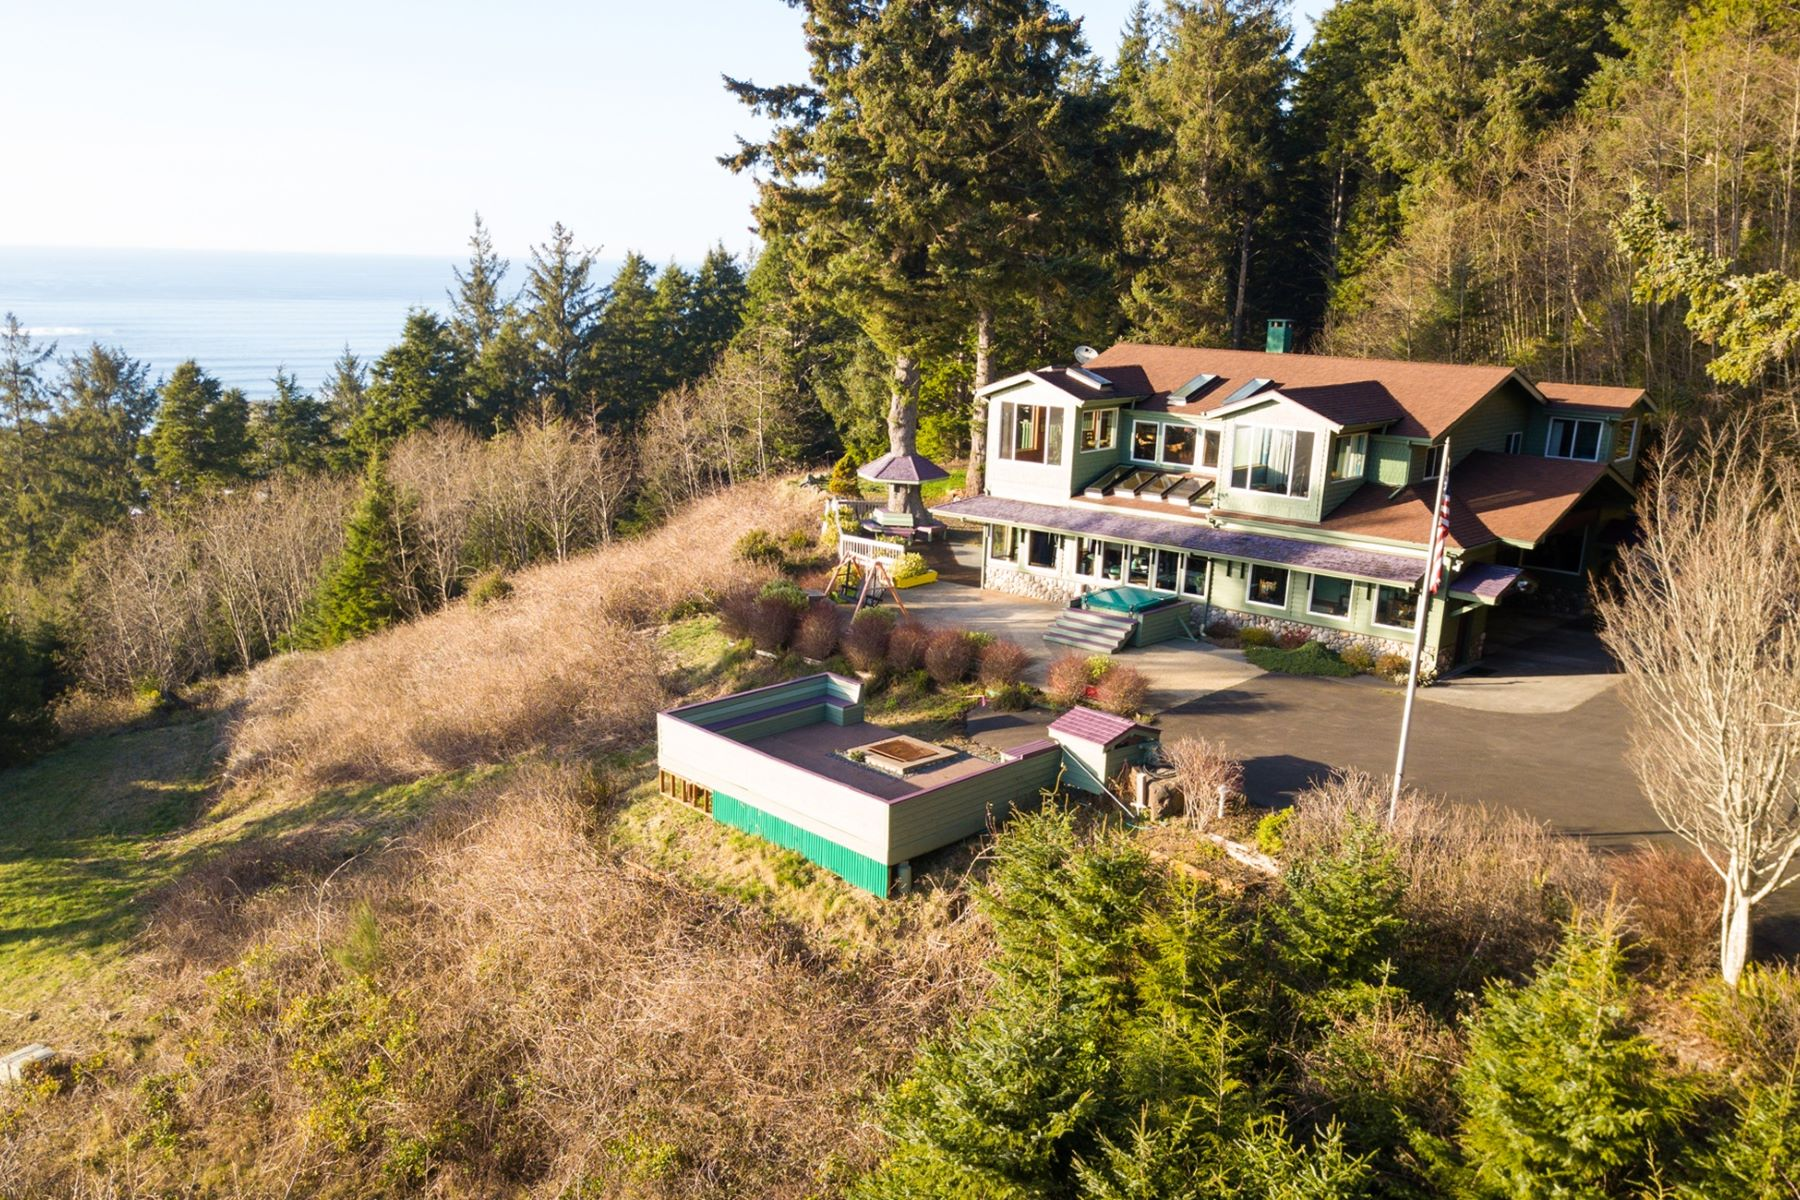 Single Family Homes for Sale at Stunning Family Estate 32307 Ruby Lane Cannon Beach, Oregon 97110 United States